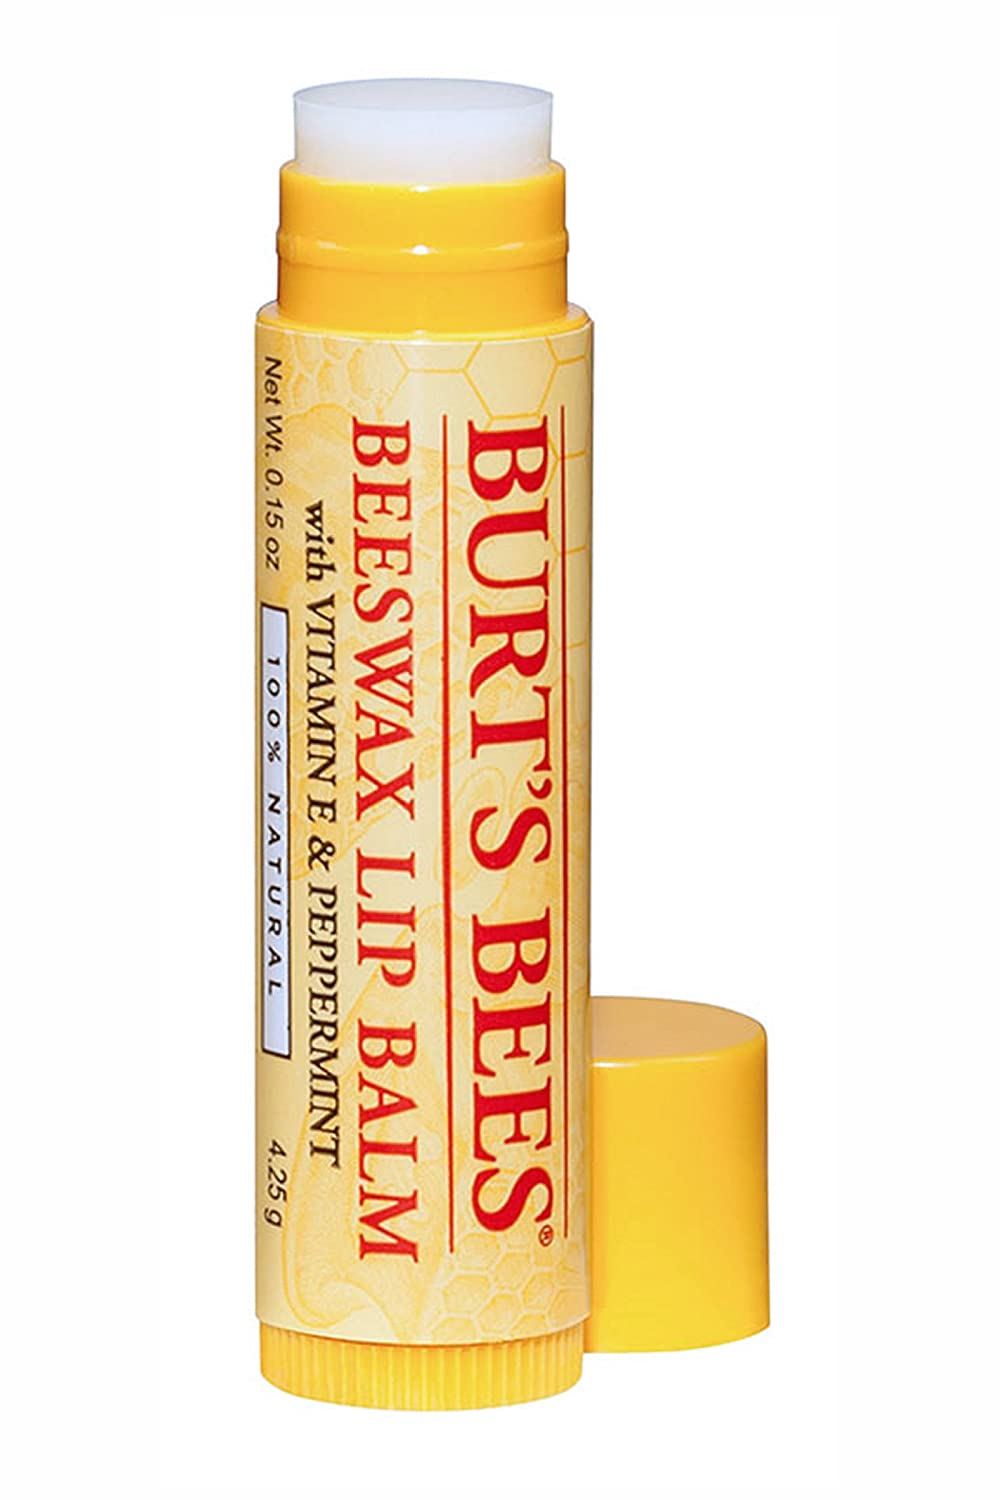 Burt's Bees 100% Natural Lip Balm, Pink Grapefruit, 4.25g Cbee Europe LTD 01451-14